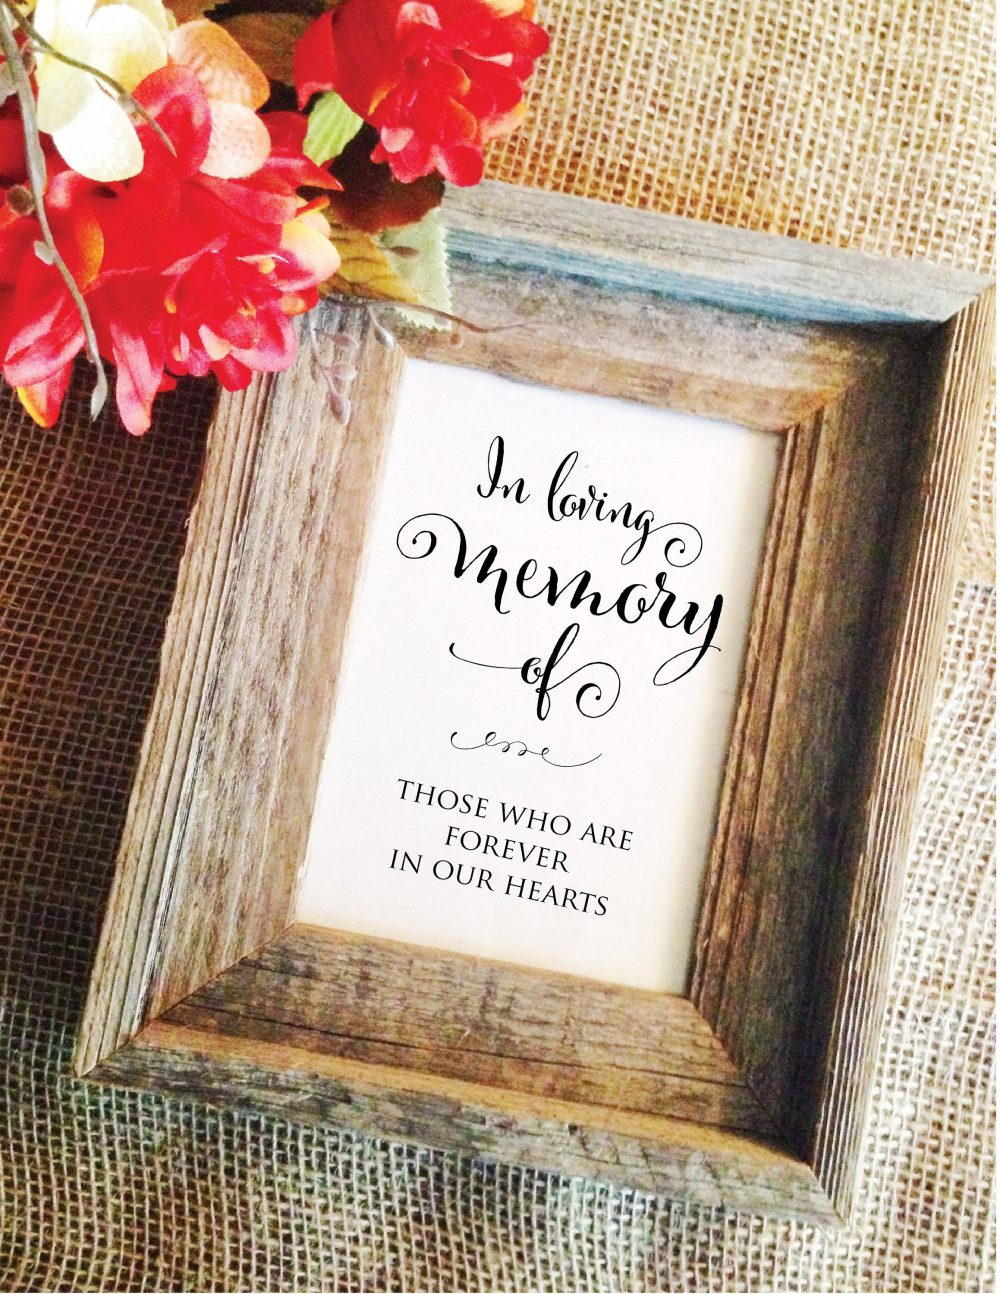 Memorial Table Sign - Wedding Memory Sign Wedding Remembrance Table in Loving Memory Sign | Frame Not Included